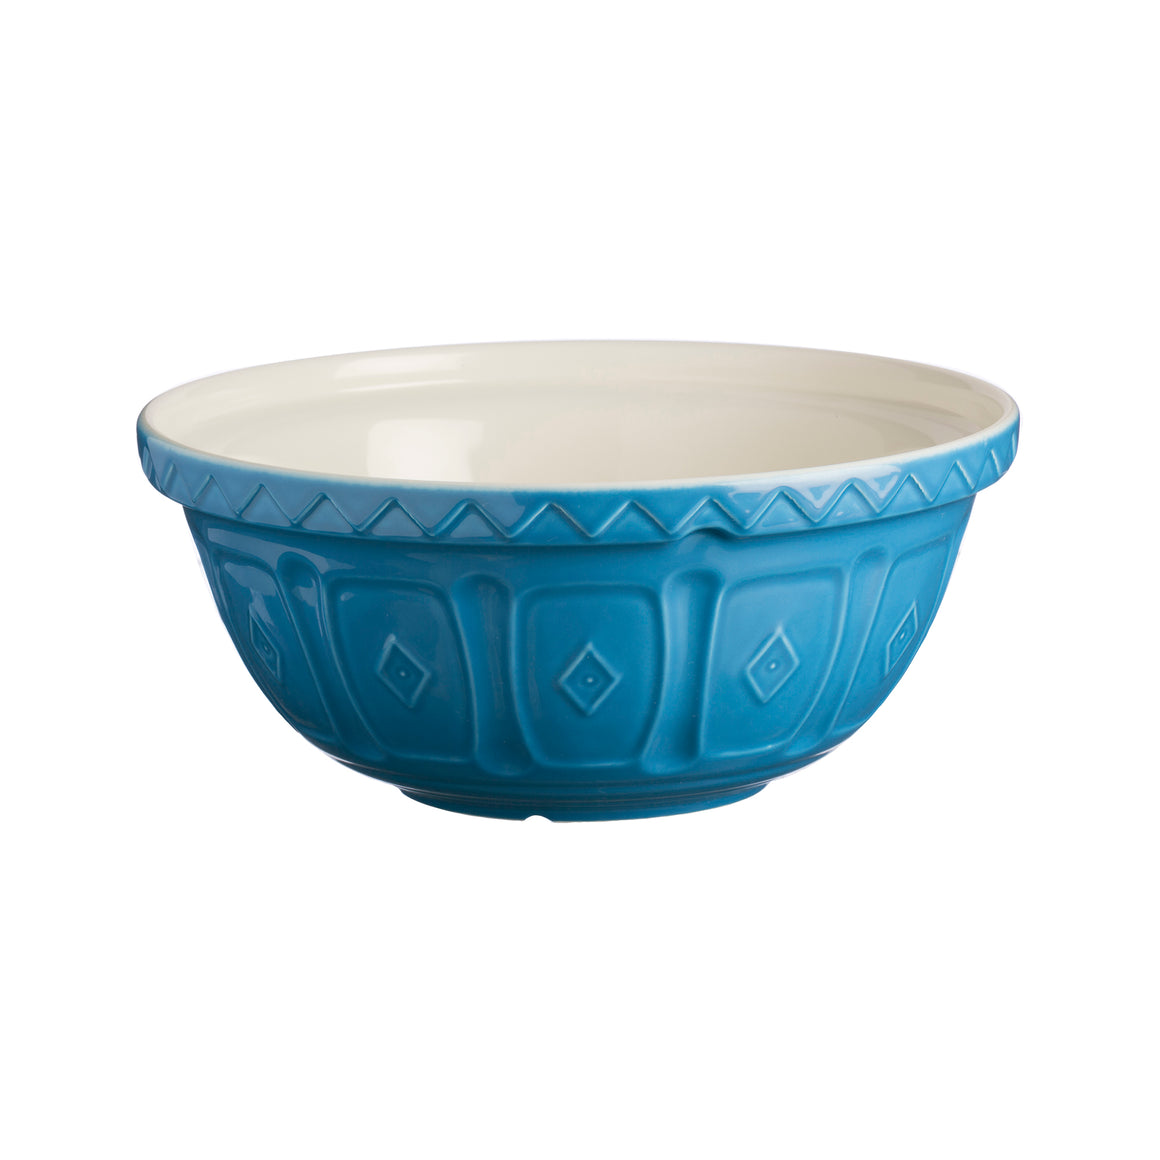 Colour Mix S12 Azure Mixing Bowl 29cm - Mason Cash - 2001.832